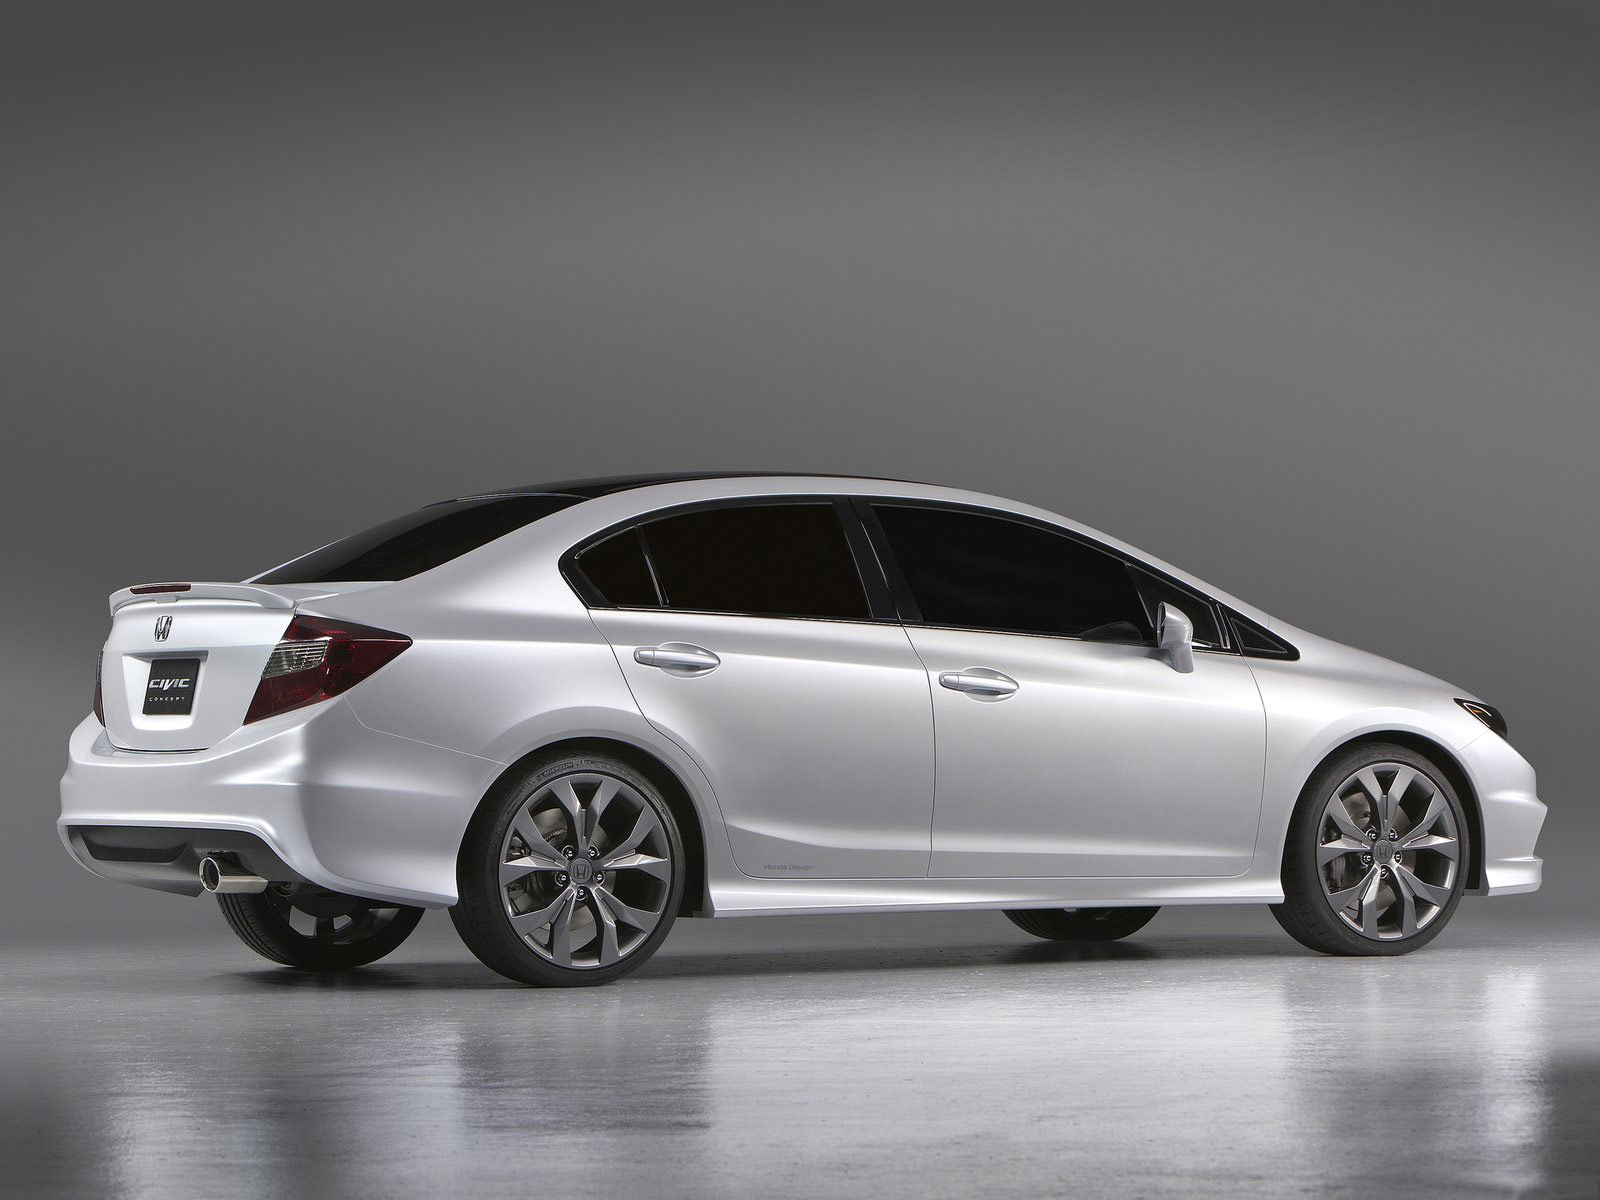 Honda Civic Si 2012 For Sale >> 2011 HONDA Civic Concept car photos | Accident lawyers info.